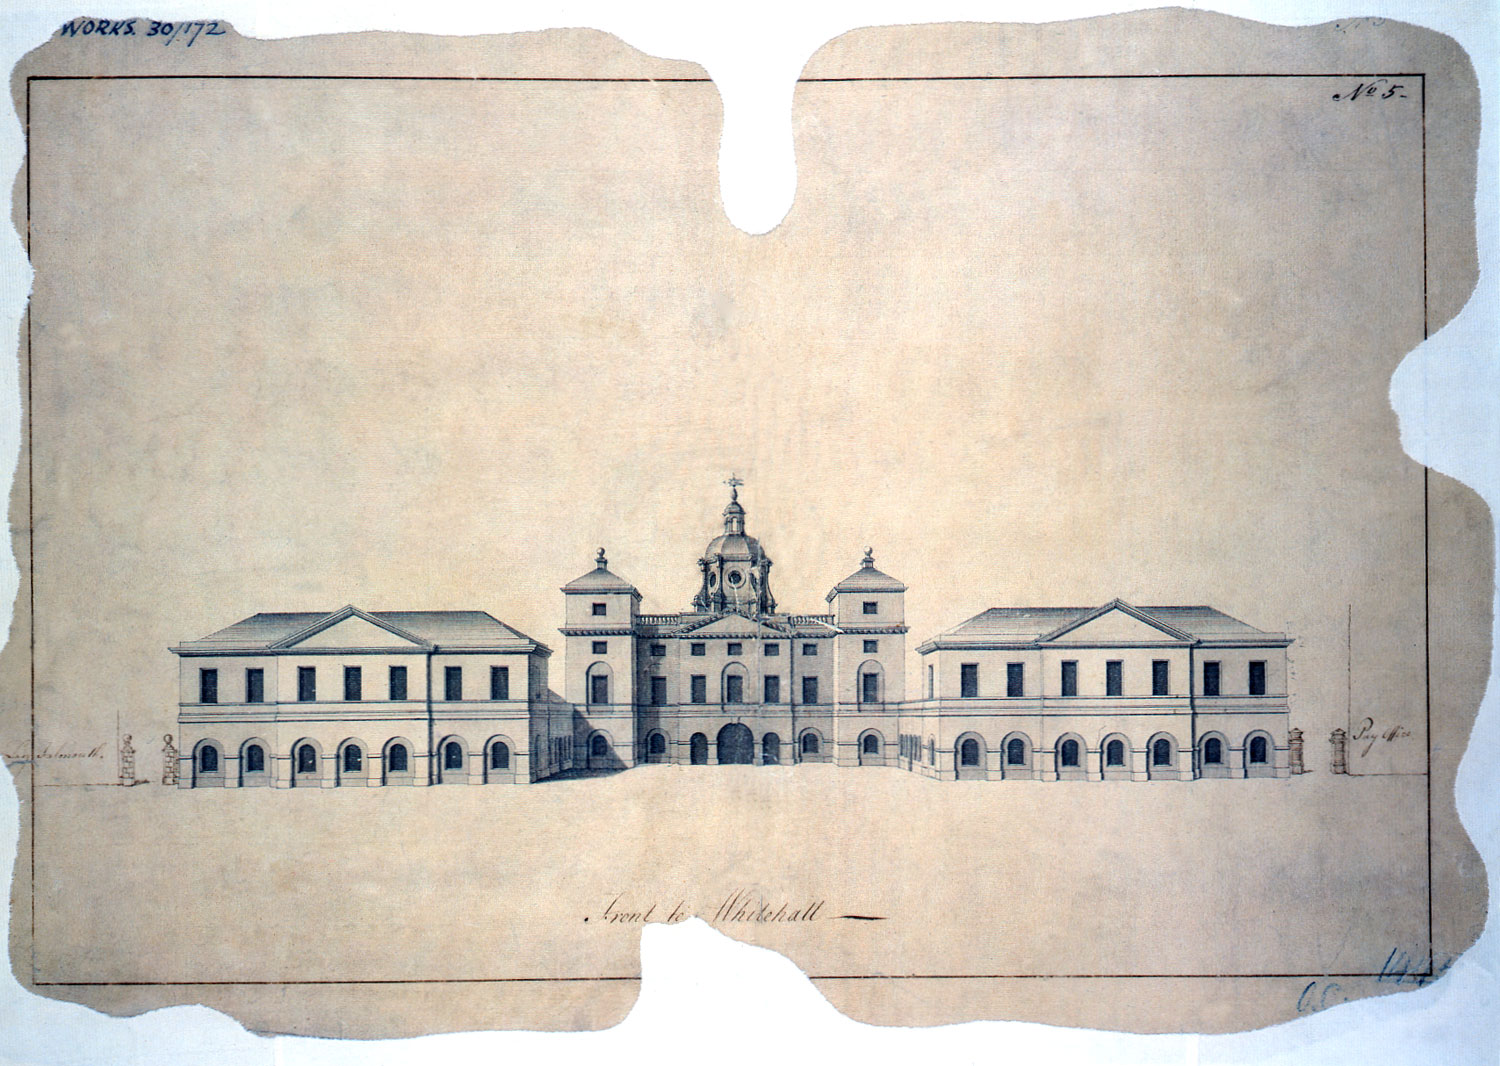 Horse Guards, elevation to Whitehall, c.1720, (WORK 30/172)